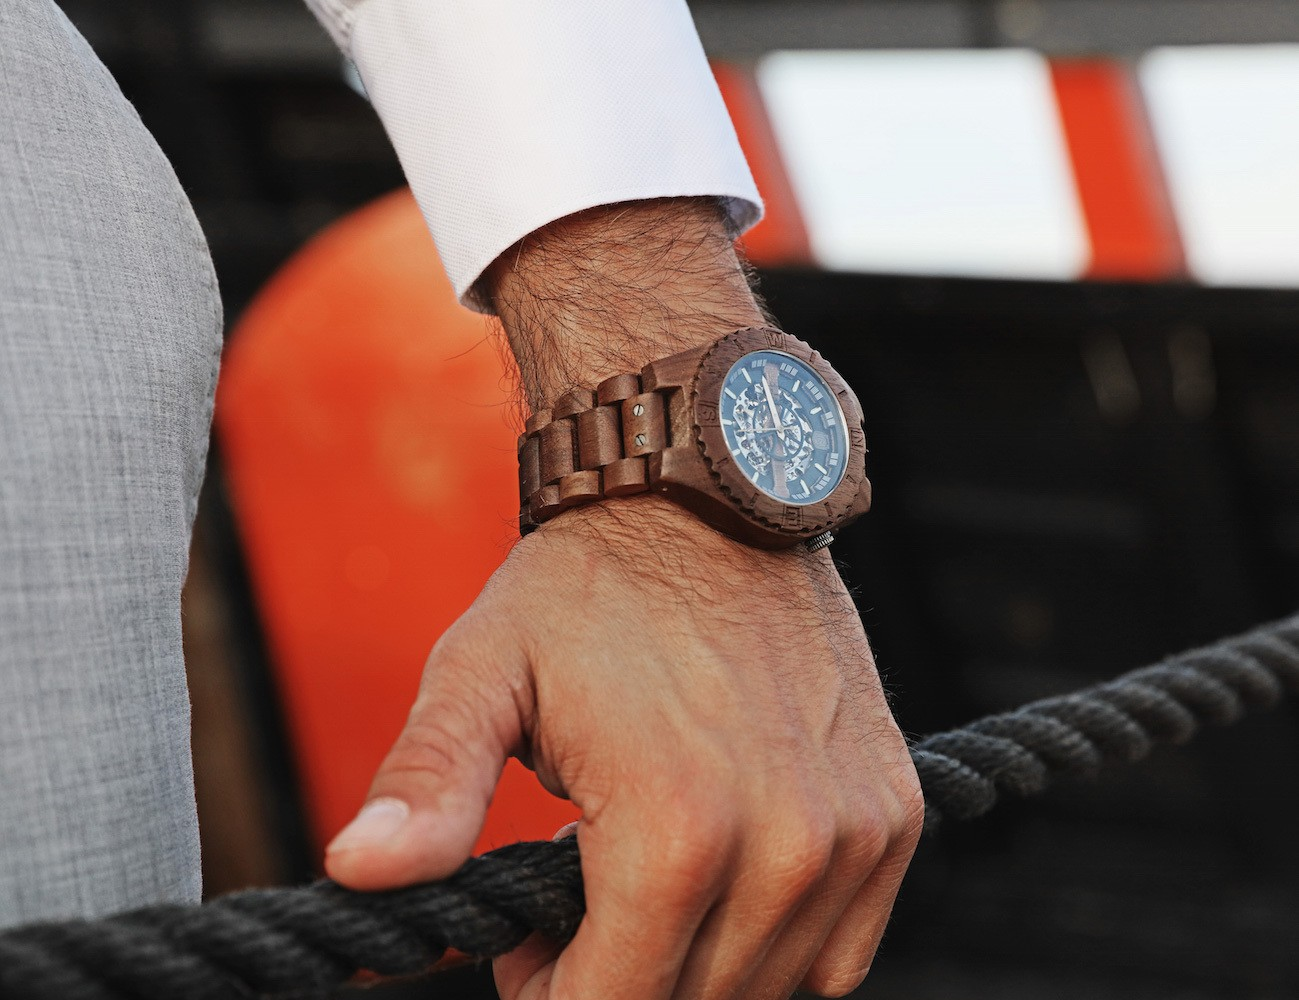 Troy+%26%238211%3B+Handcrafted+Wood+Watch+With+Visible+Skeleton